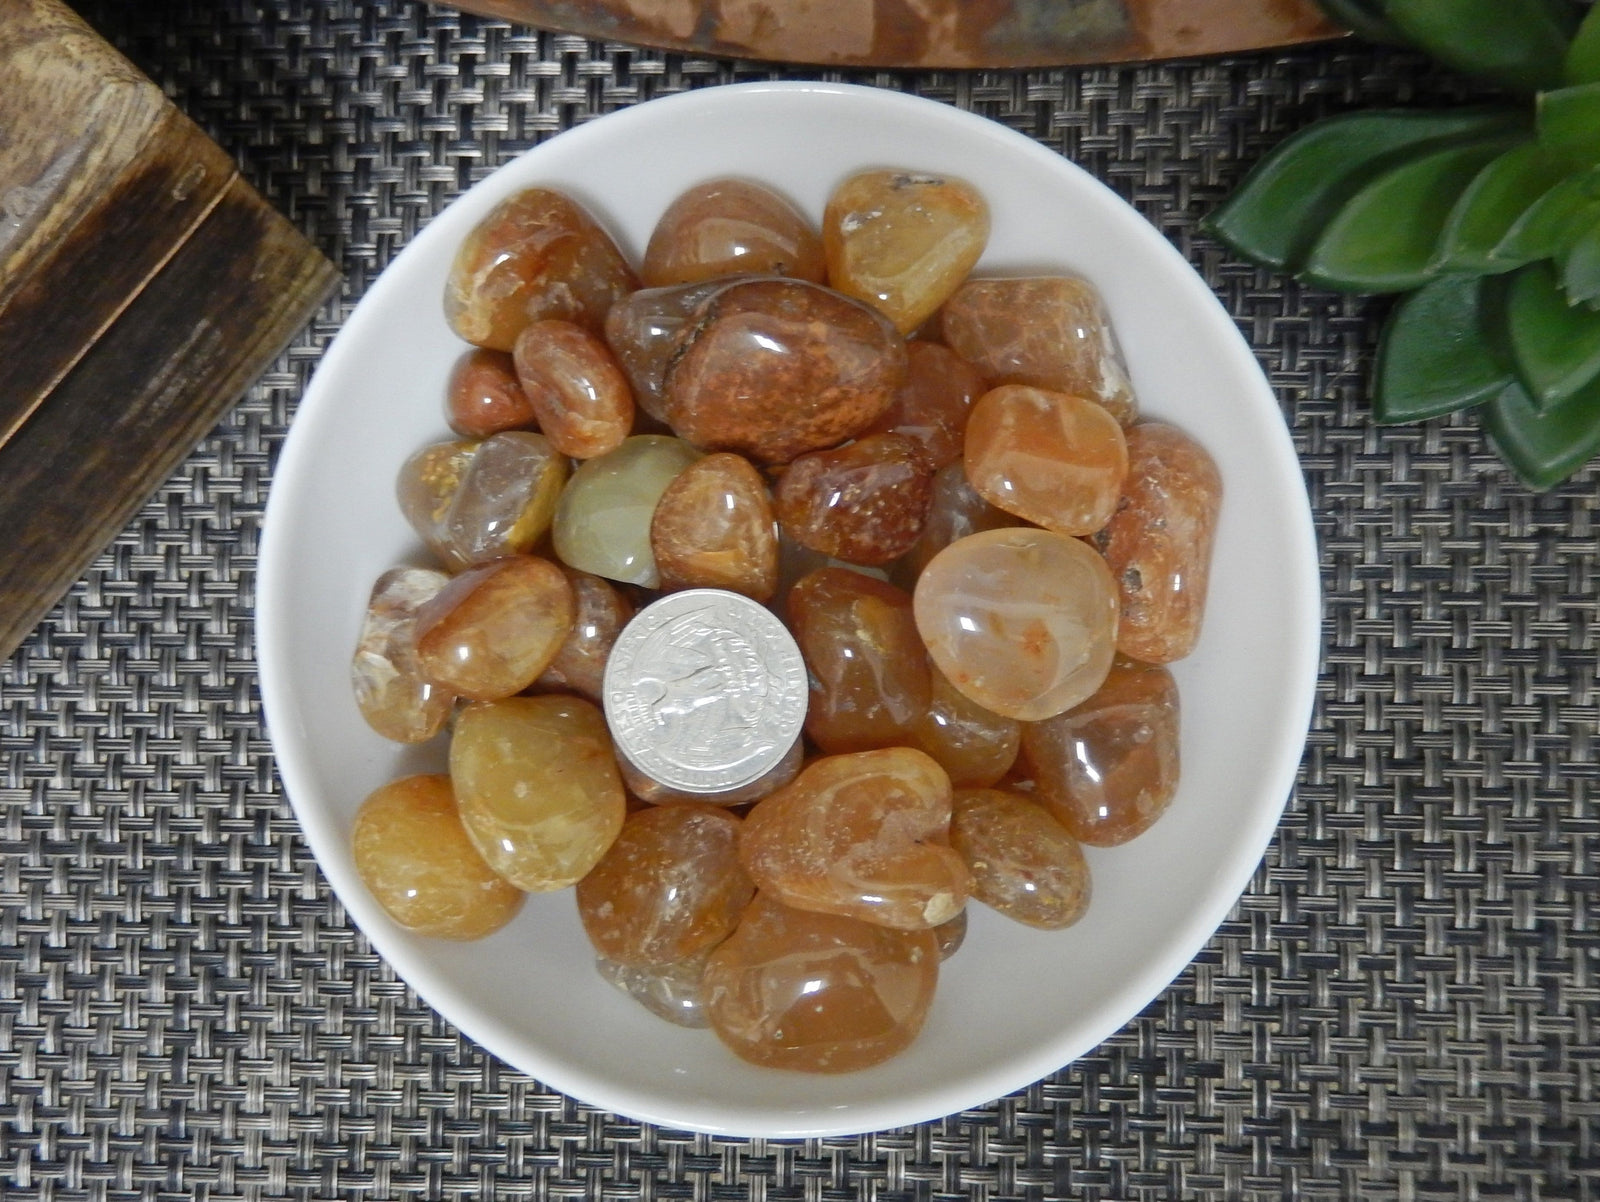 Tumbled Stones - 1/2 Lb Carnelian Tumbled Gemstones - Polished Orange Stones - Jewelry Supplies - Arts And Crafts ~ Choose 1,3,5 Bags (TS-15a)